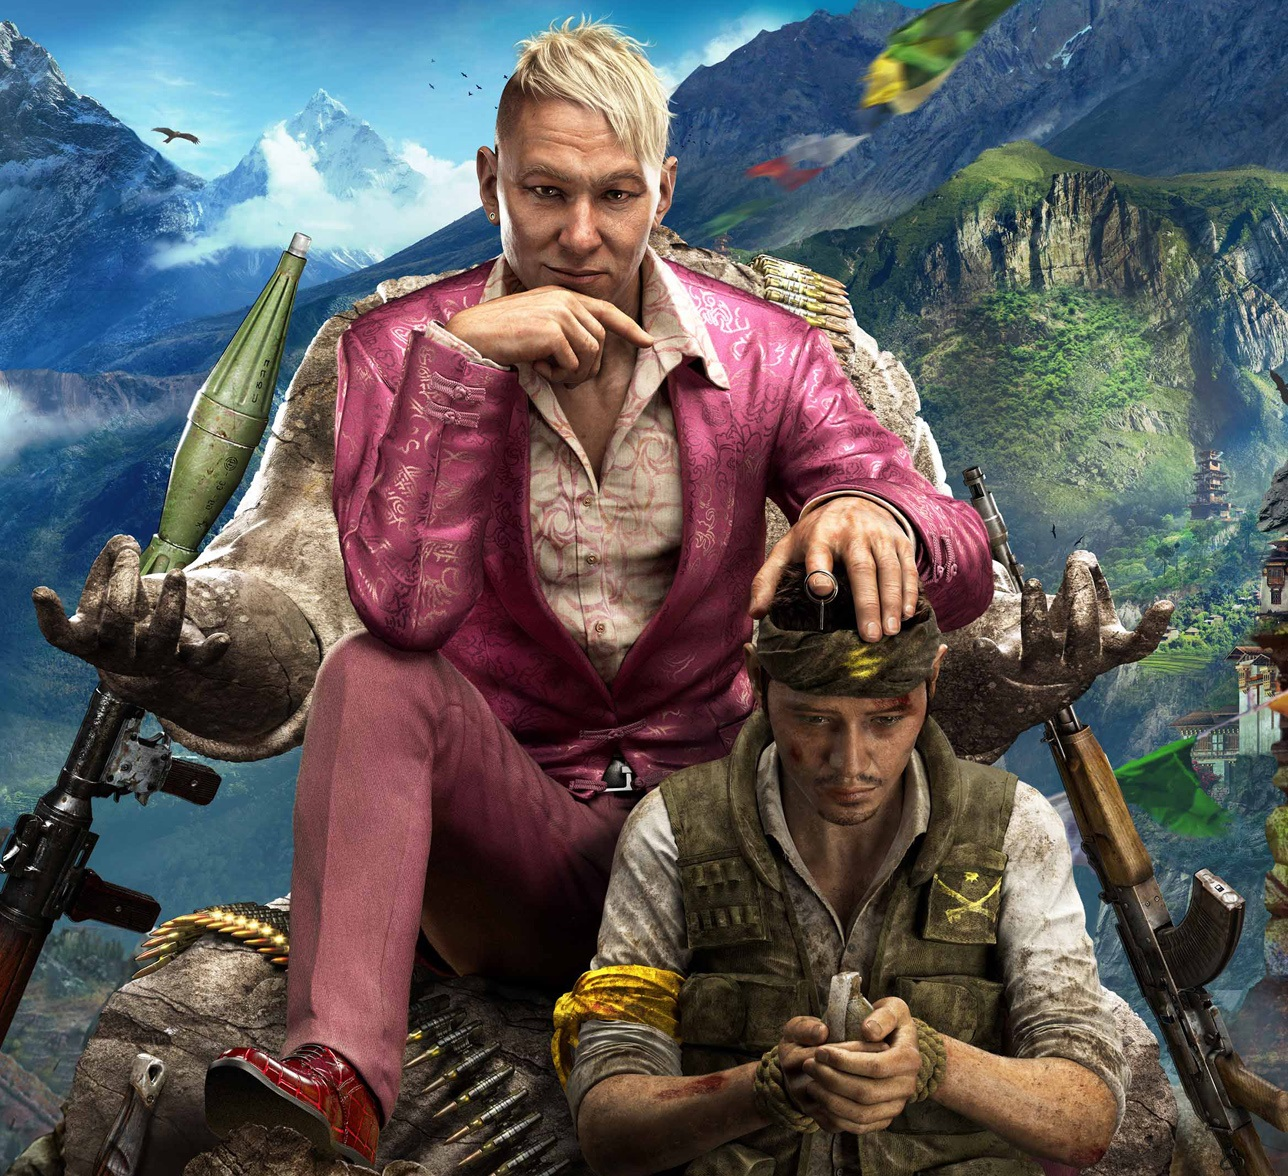 far cry 4 download pc windows 7